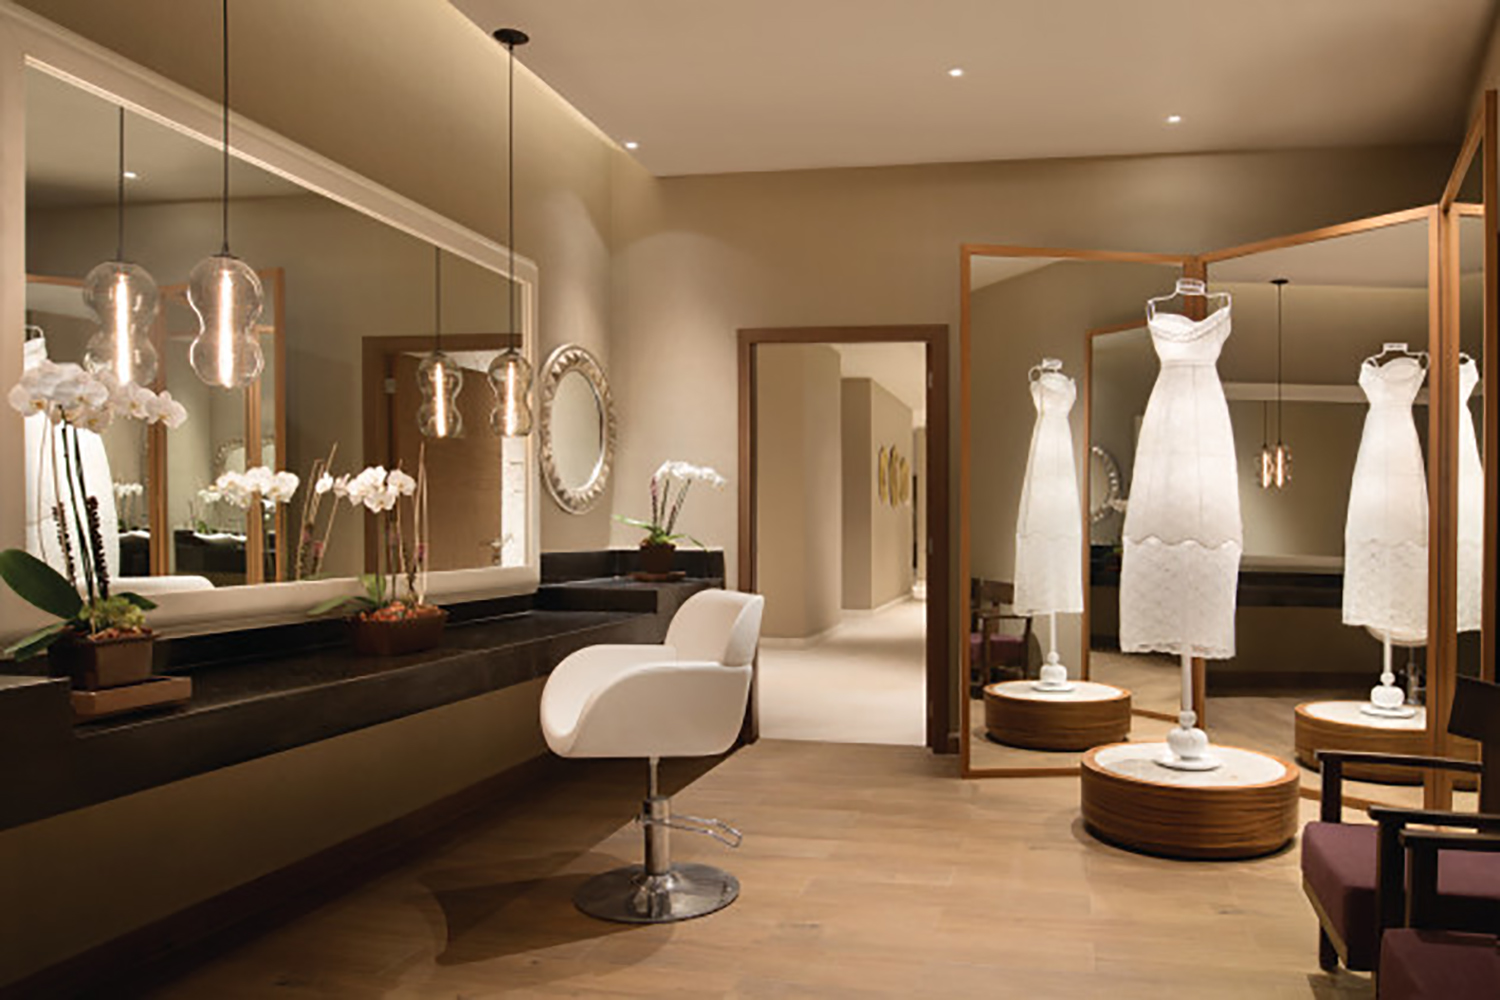 Zen Salon offers a private room for bridal parties and special occasions.